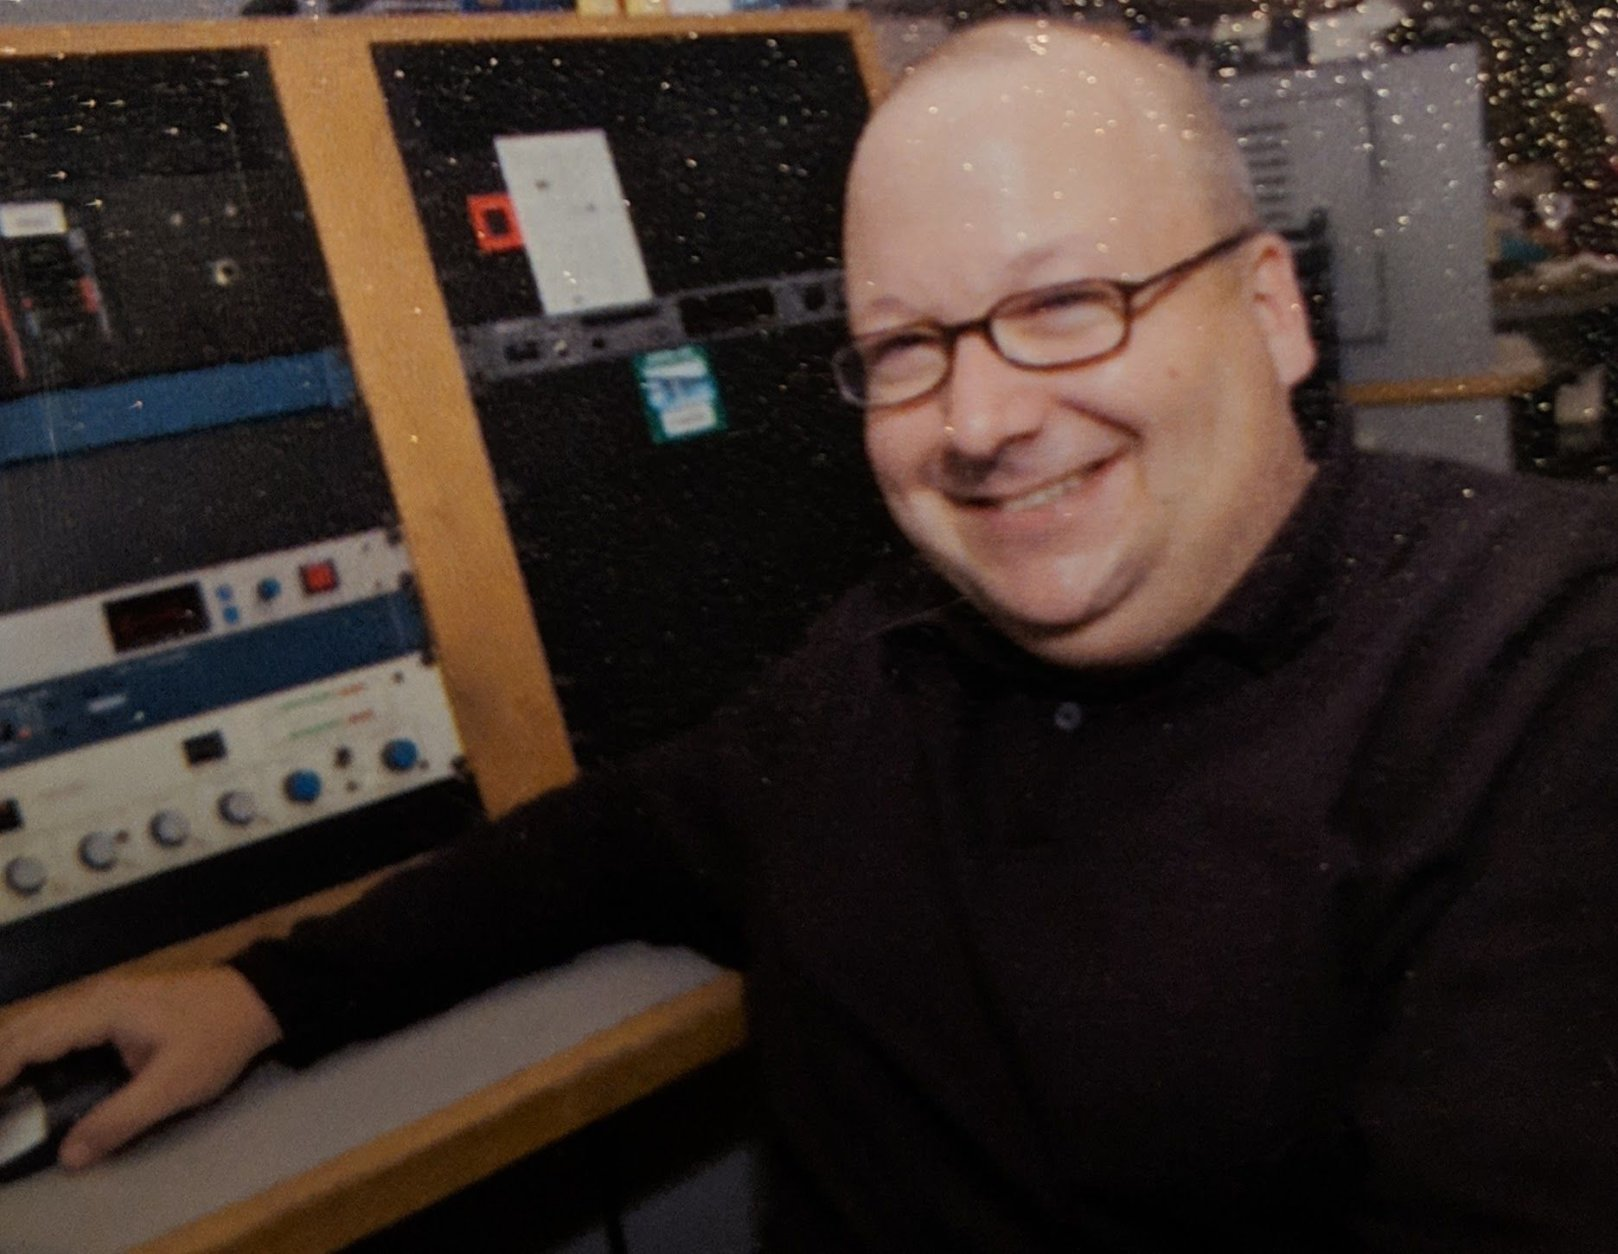 Mike McMearty, shown here in an undated photo, is the current director of news and programming. A 27-year veteran, he has handled a variety of roles around the newsroom and has led the station to winning dozens of awards. (File photo)